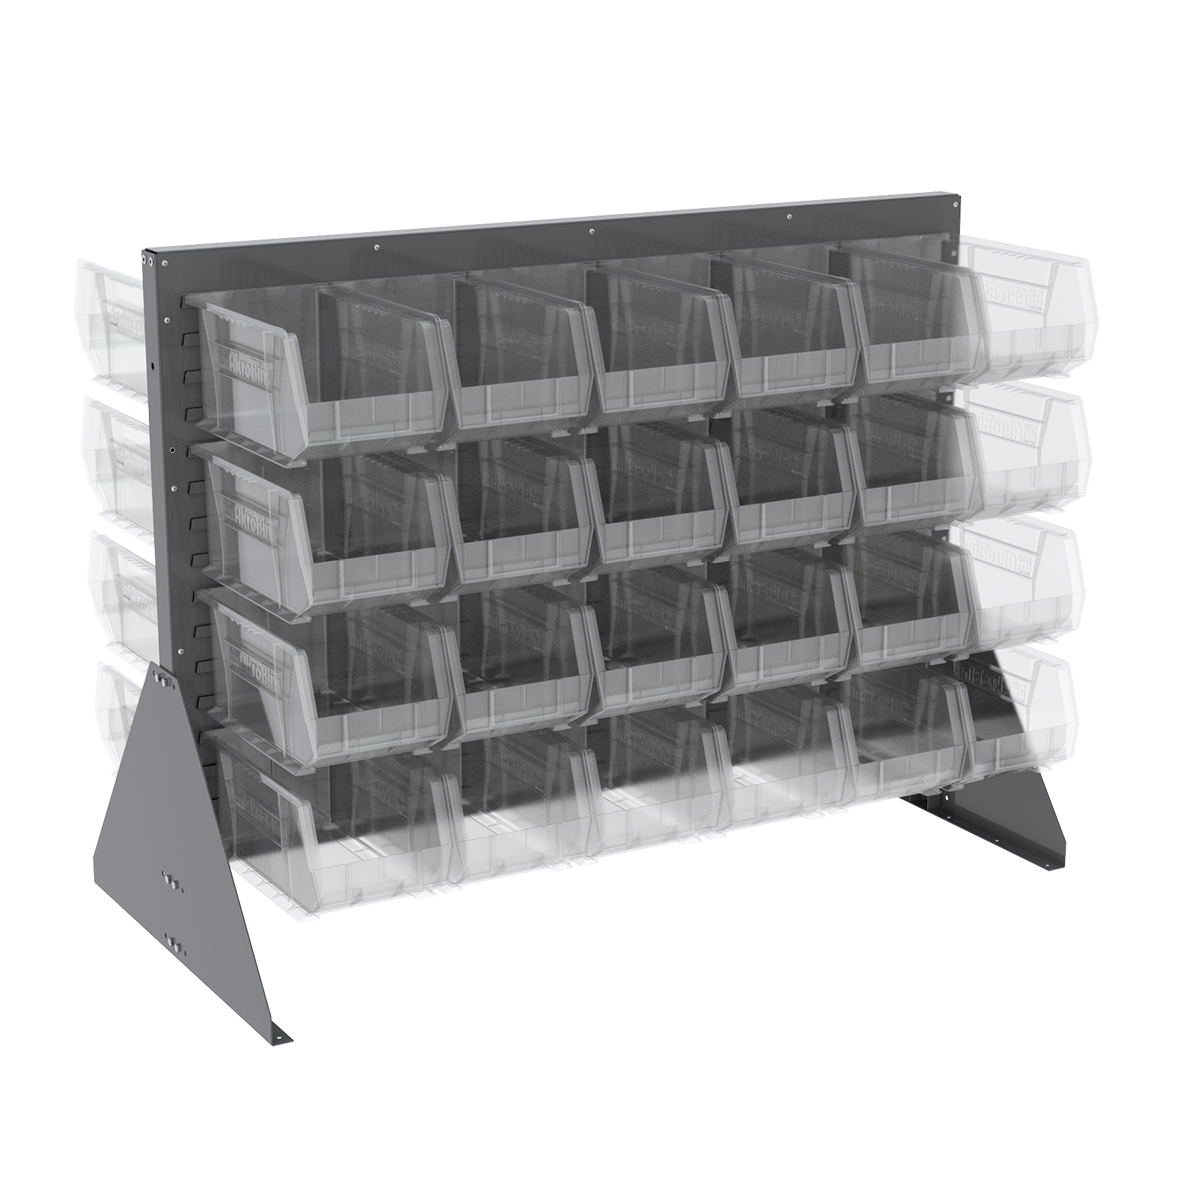 Item DISCONTINUED by Manufacturer.  Low Profile Floor Rack, 2-Sided w/ 48 AkroBins, Gray/Clear (30607GY240SC).  This item sold in carton quantities of 1.